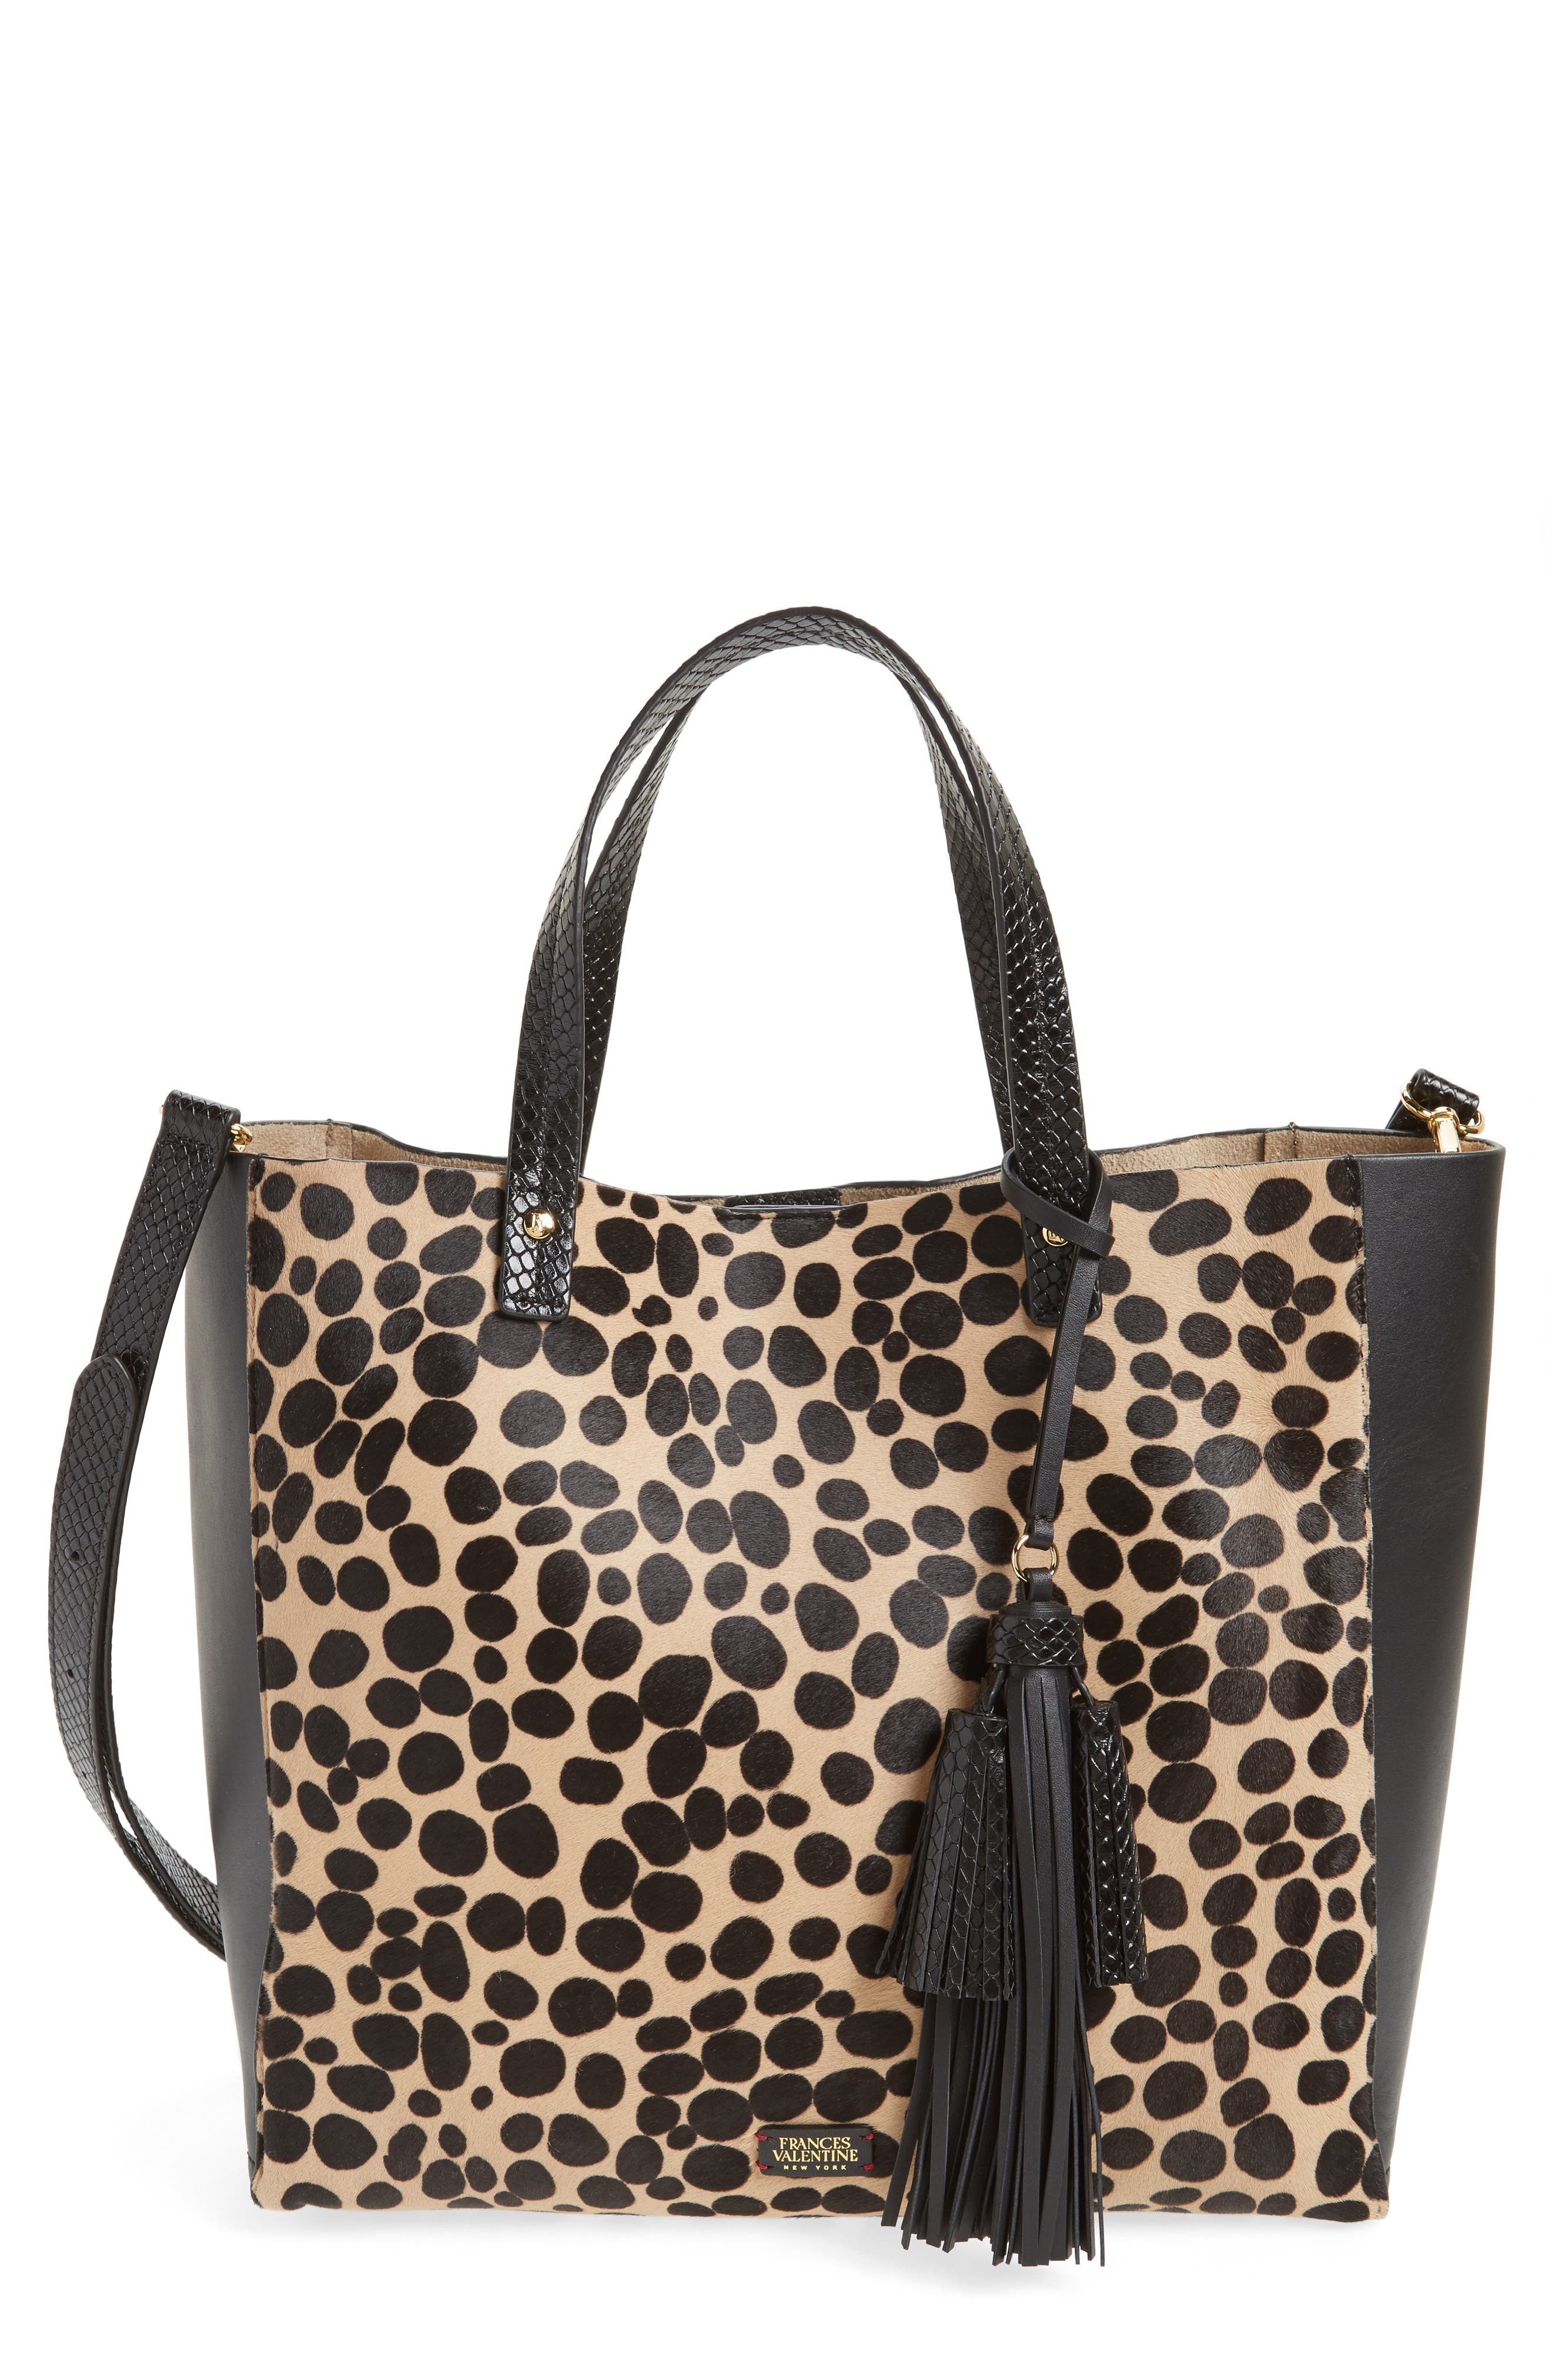 Frances Valentine Genuine Calf Hair & Leather Convertible Tote